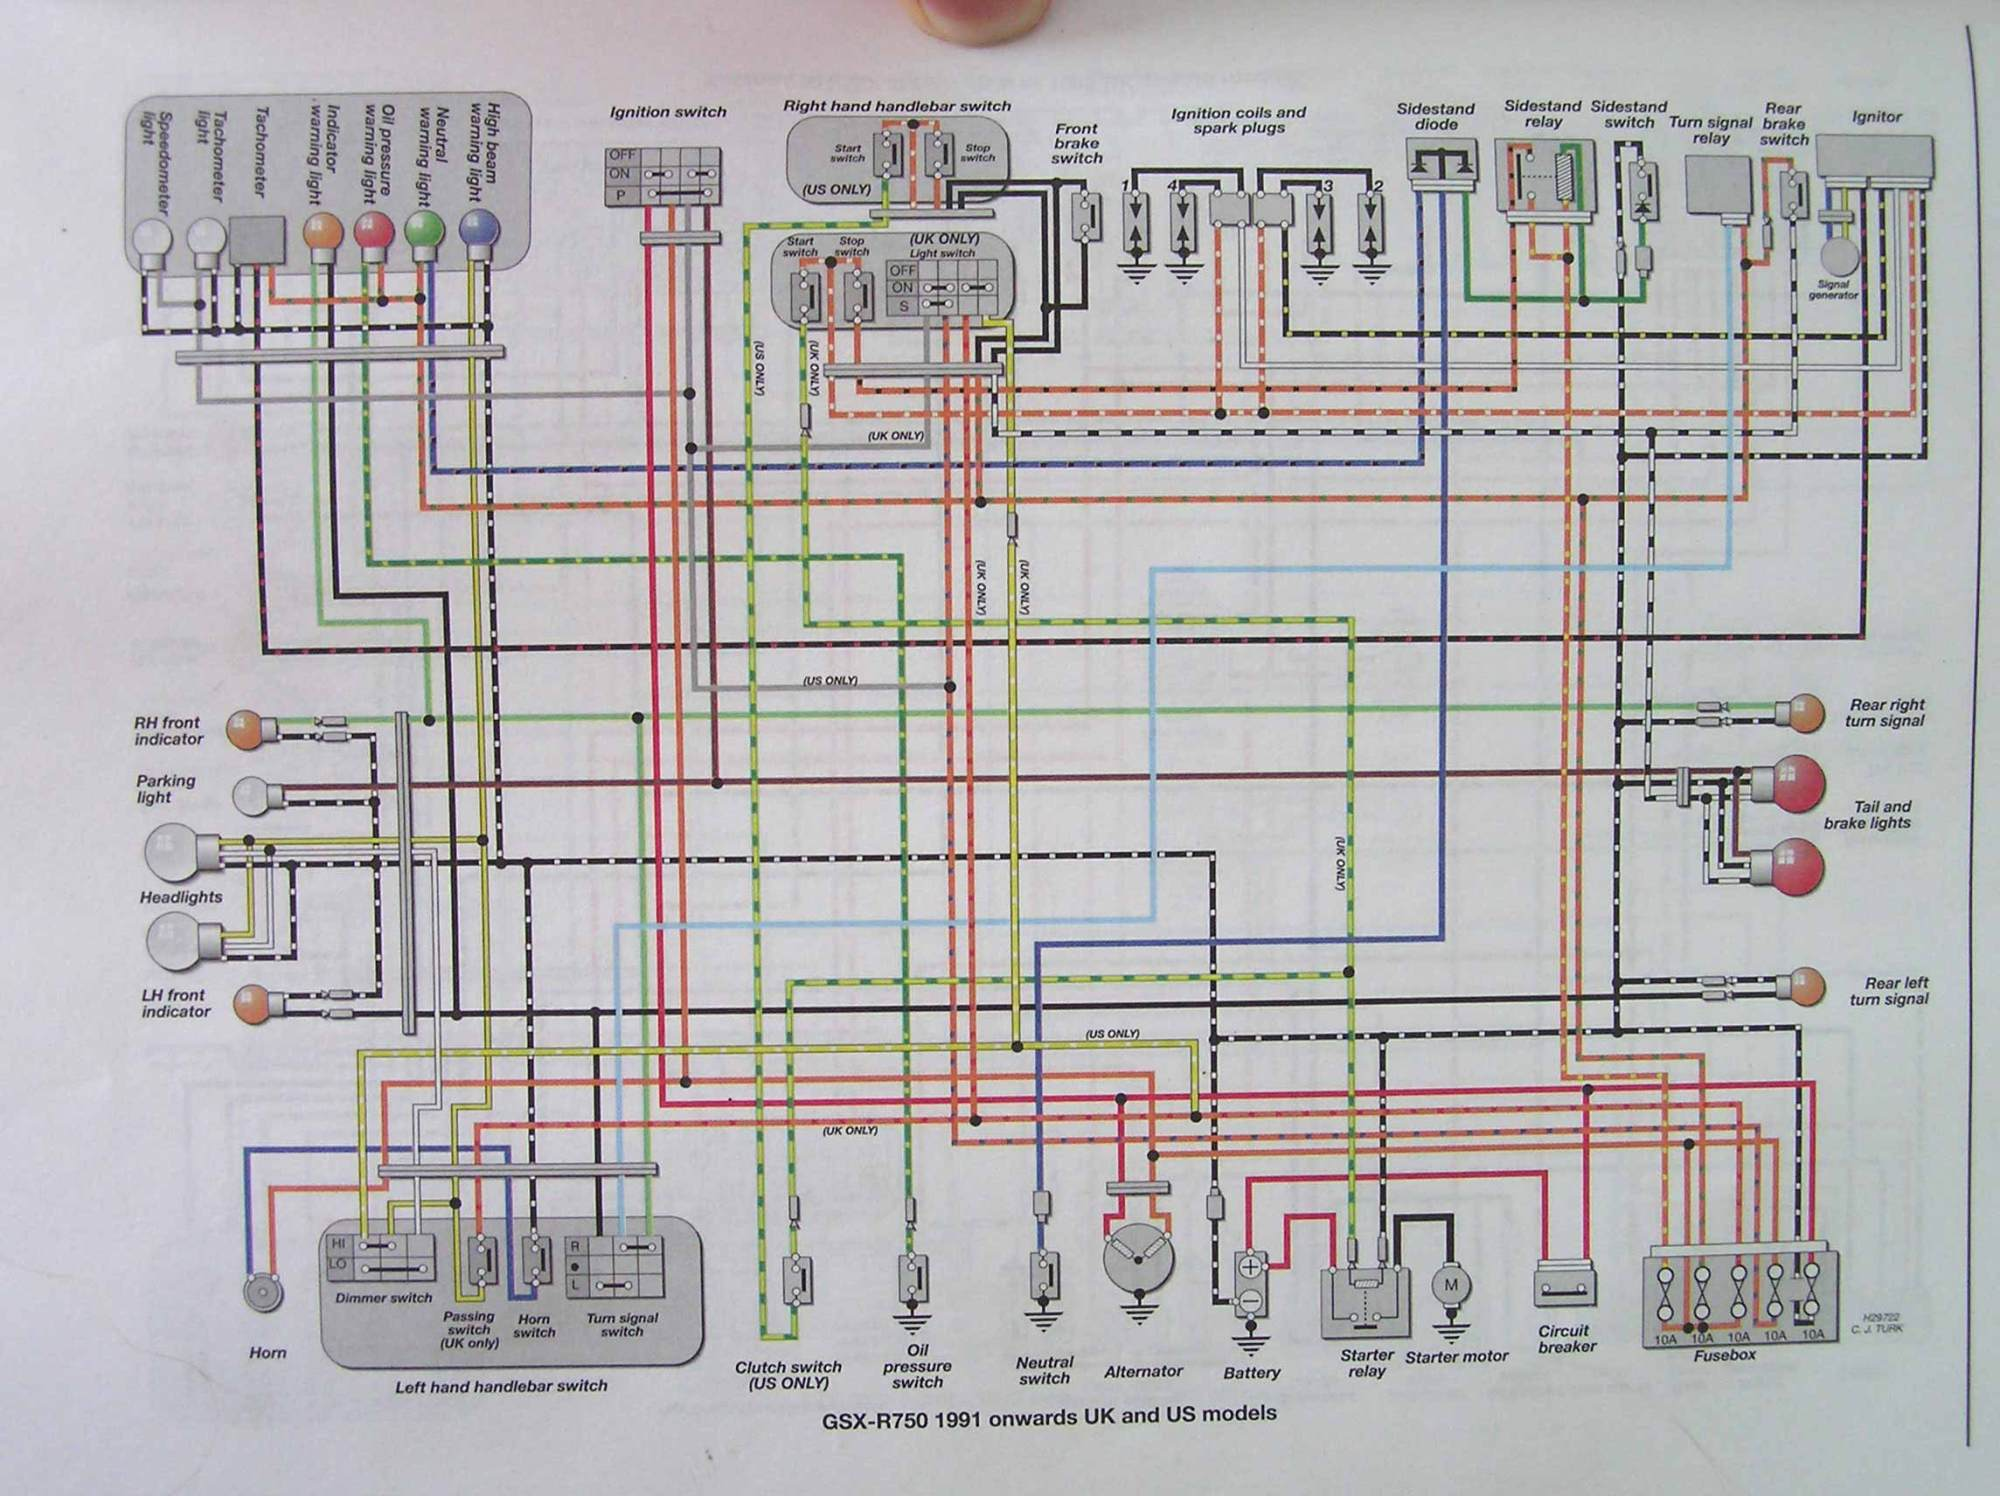 hight resolution of wiring diagram for 2001 suzuki tl 1000 library wiring diagramwiring diagram for 2001 suzuki tl 1000